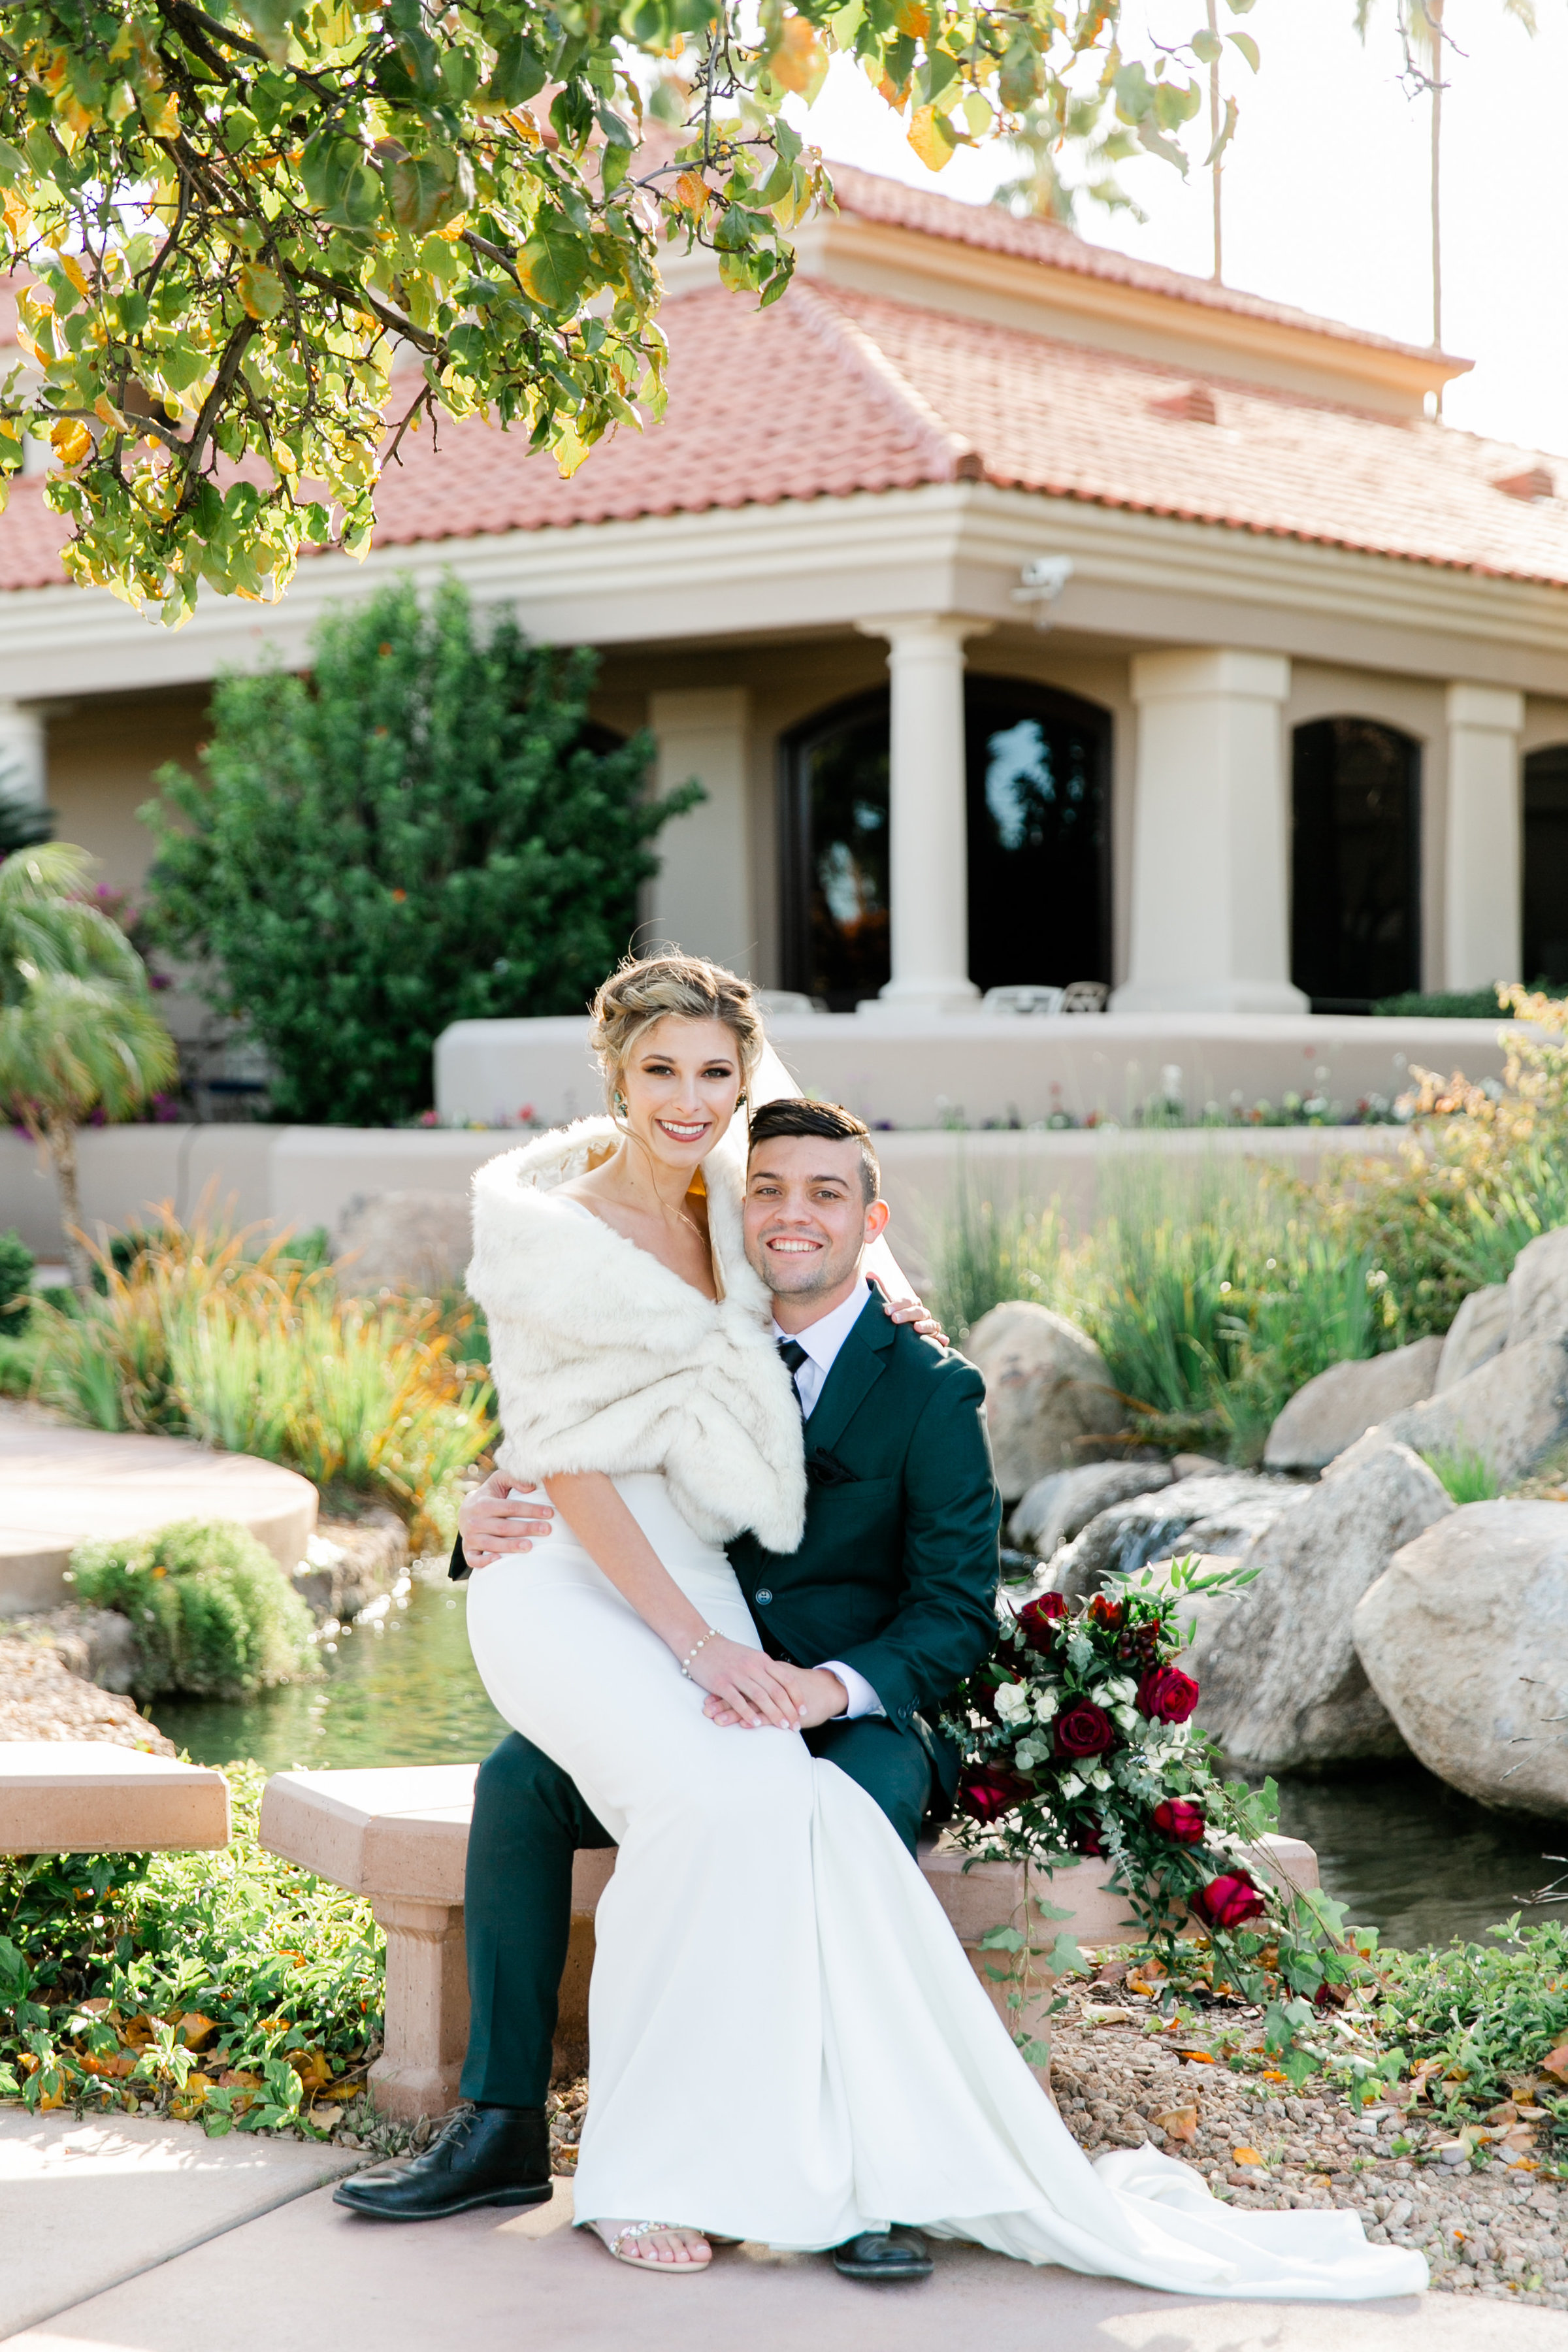 Karlie Colleen Photography - Gilbert Arizona Wedding - Val Vista Lakes - Brynne & Josh-444